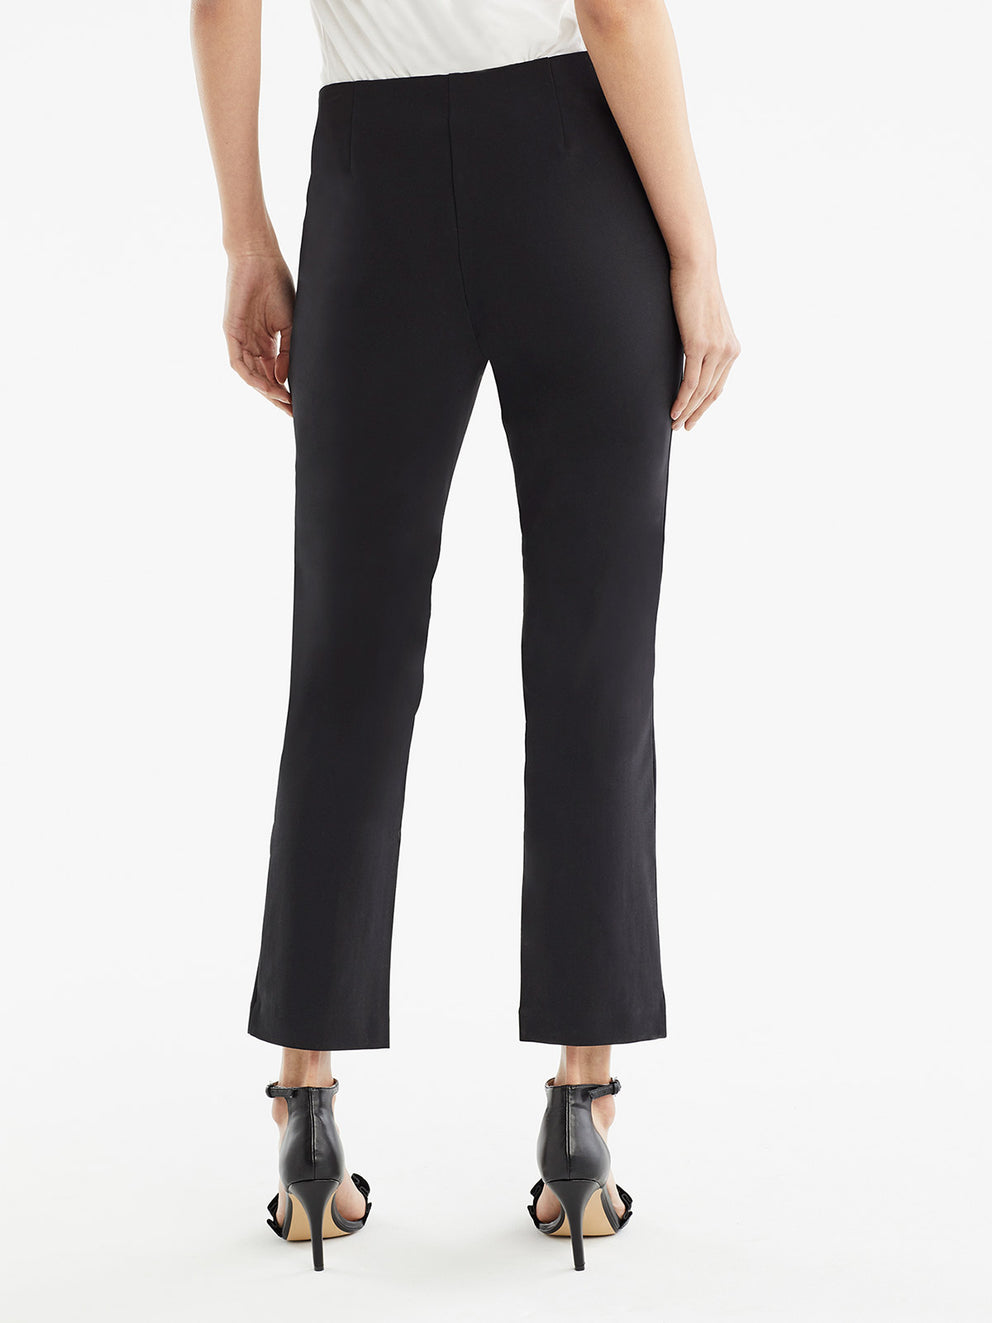 The Jones New York Clean Pull-On Pant, Plus Size in color Black - Image Position 3